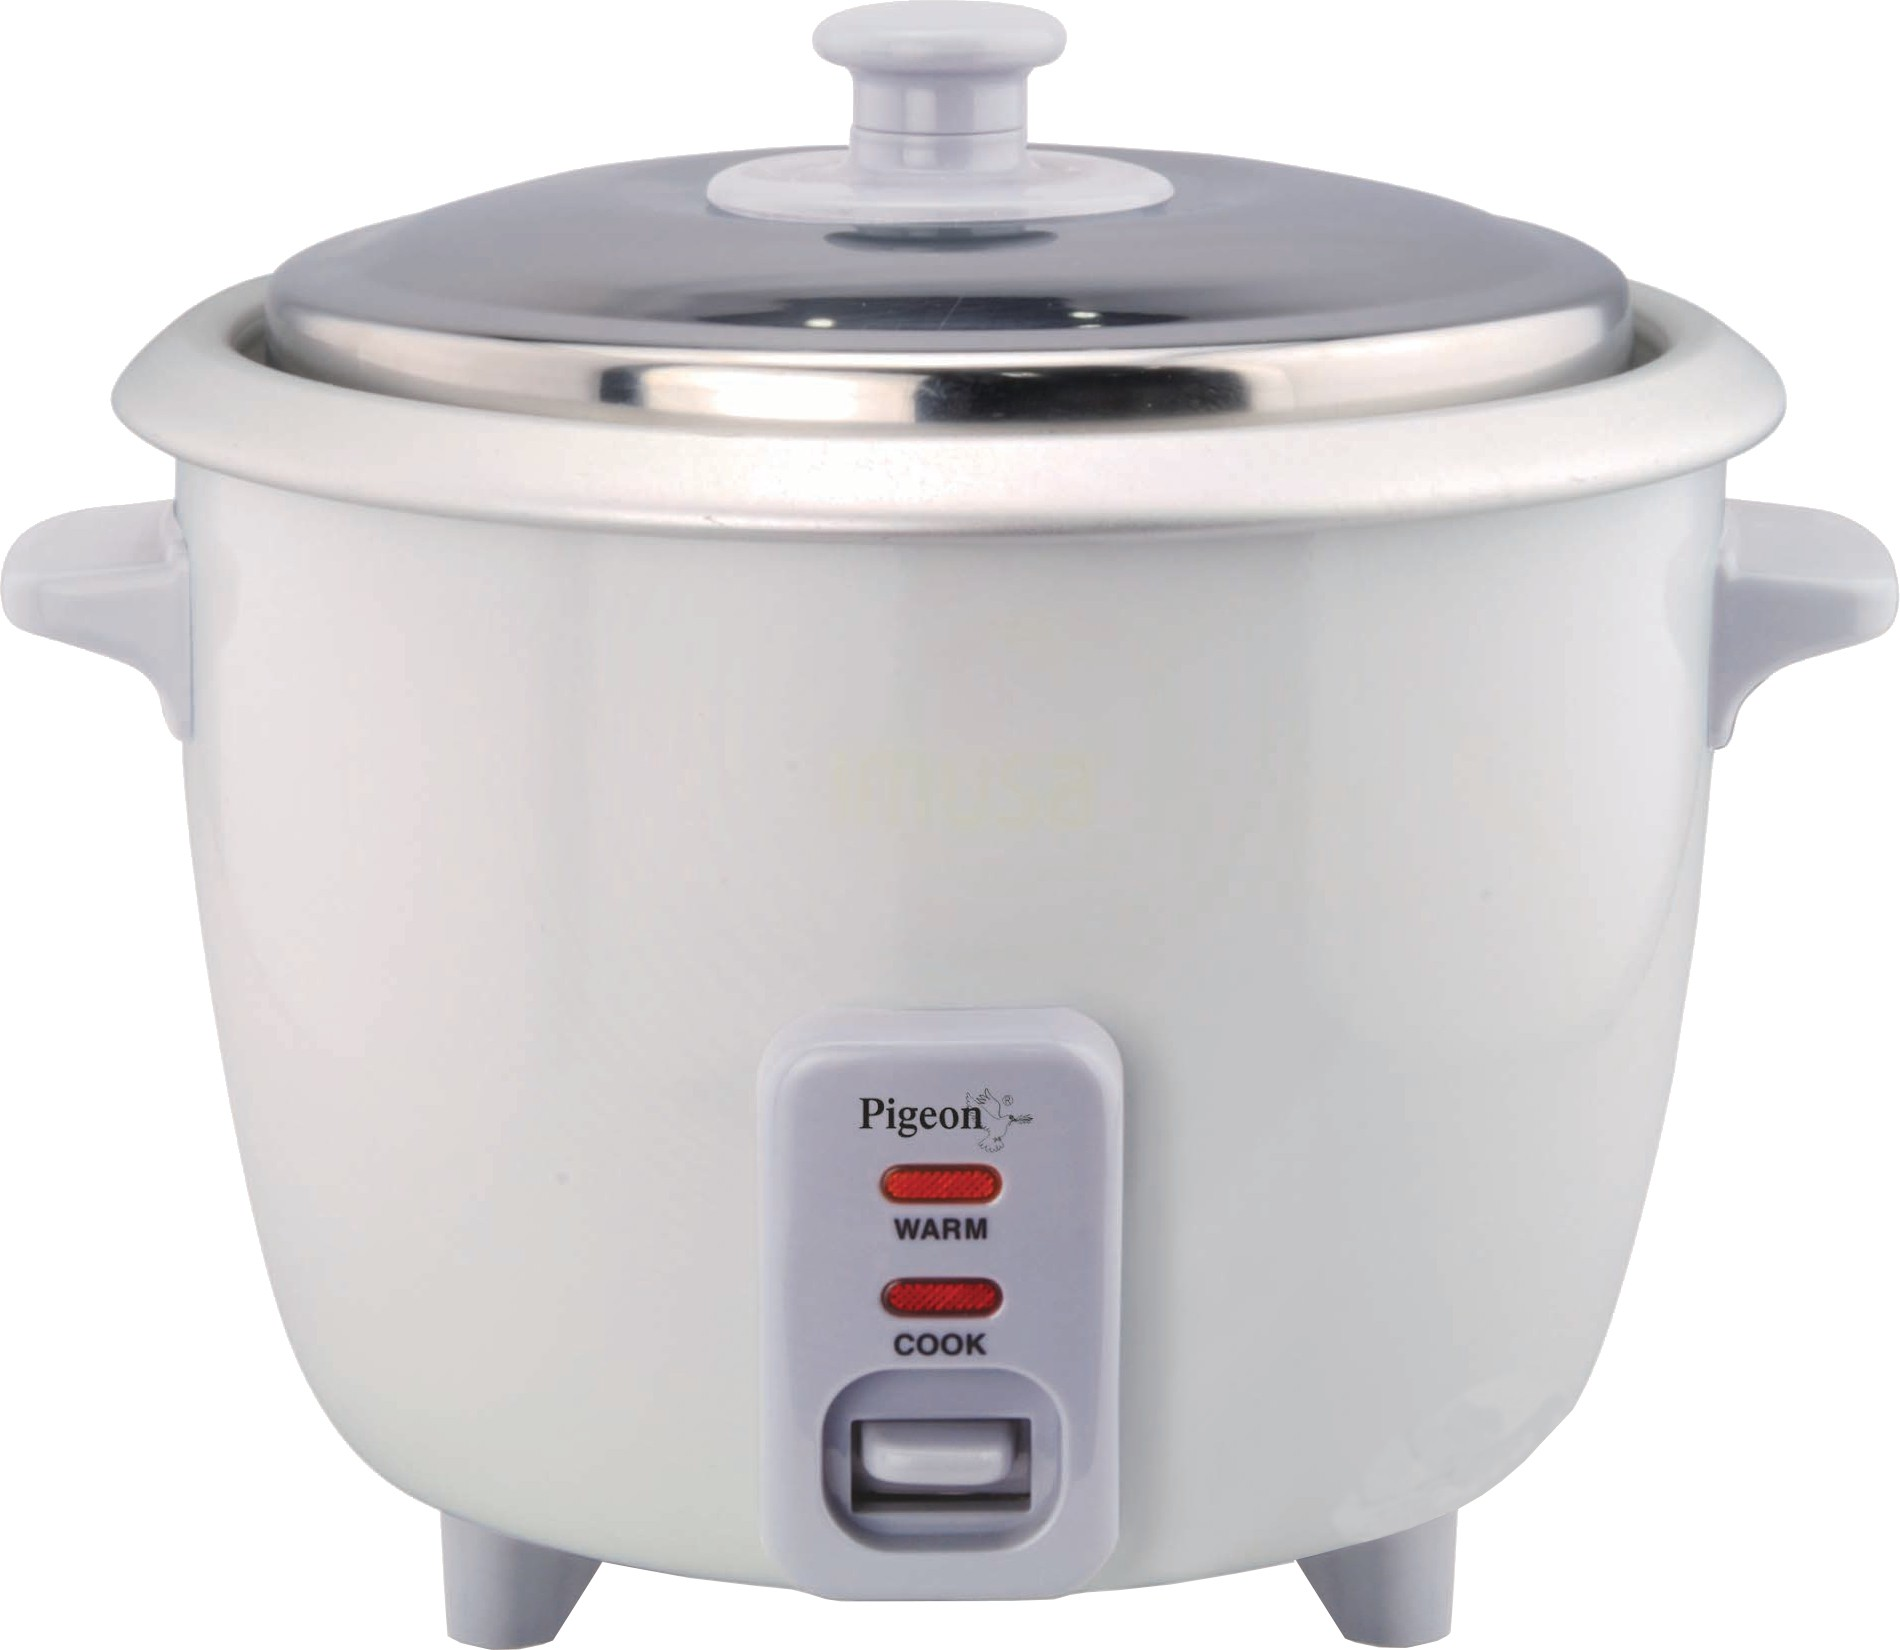 Deals - Hyderabad - Electric Cookers <br> Prestige & more<br> Category - home_kitchen<br> Business - Flipkart.com